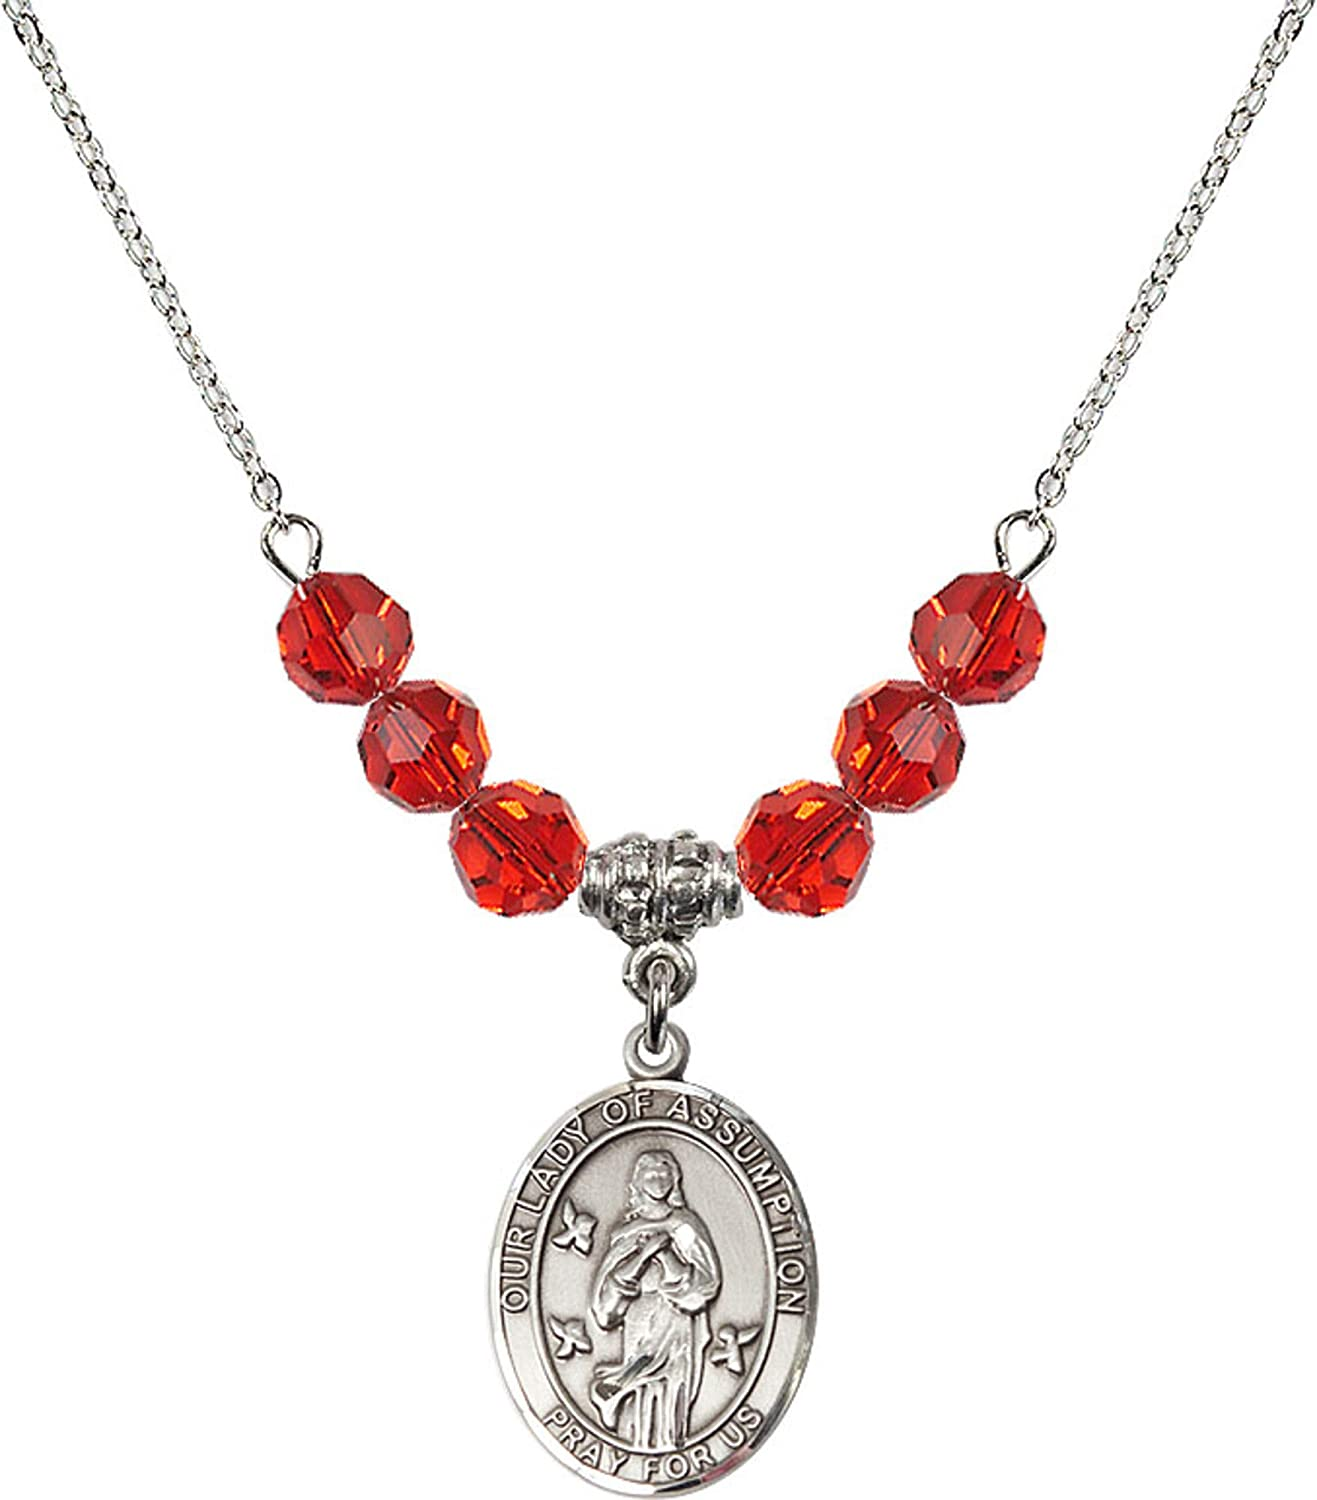 Bonyak Jewelry 18 Inch Rhodium Plated Necklace w// 6mm Red July Birth Month Stone Beads and Our Lady of Assumption Charm